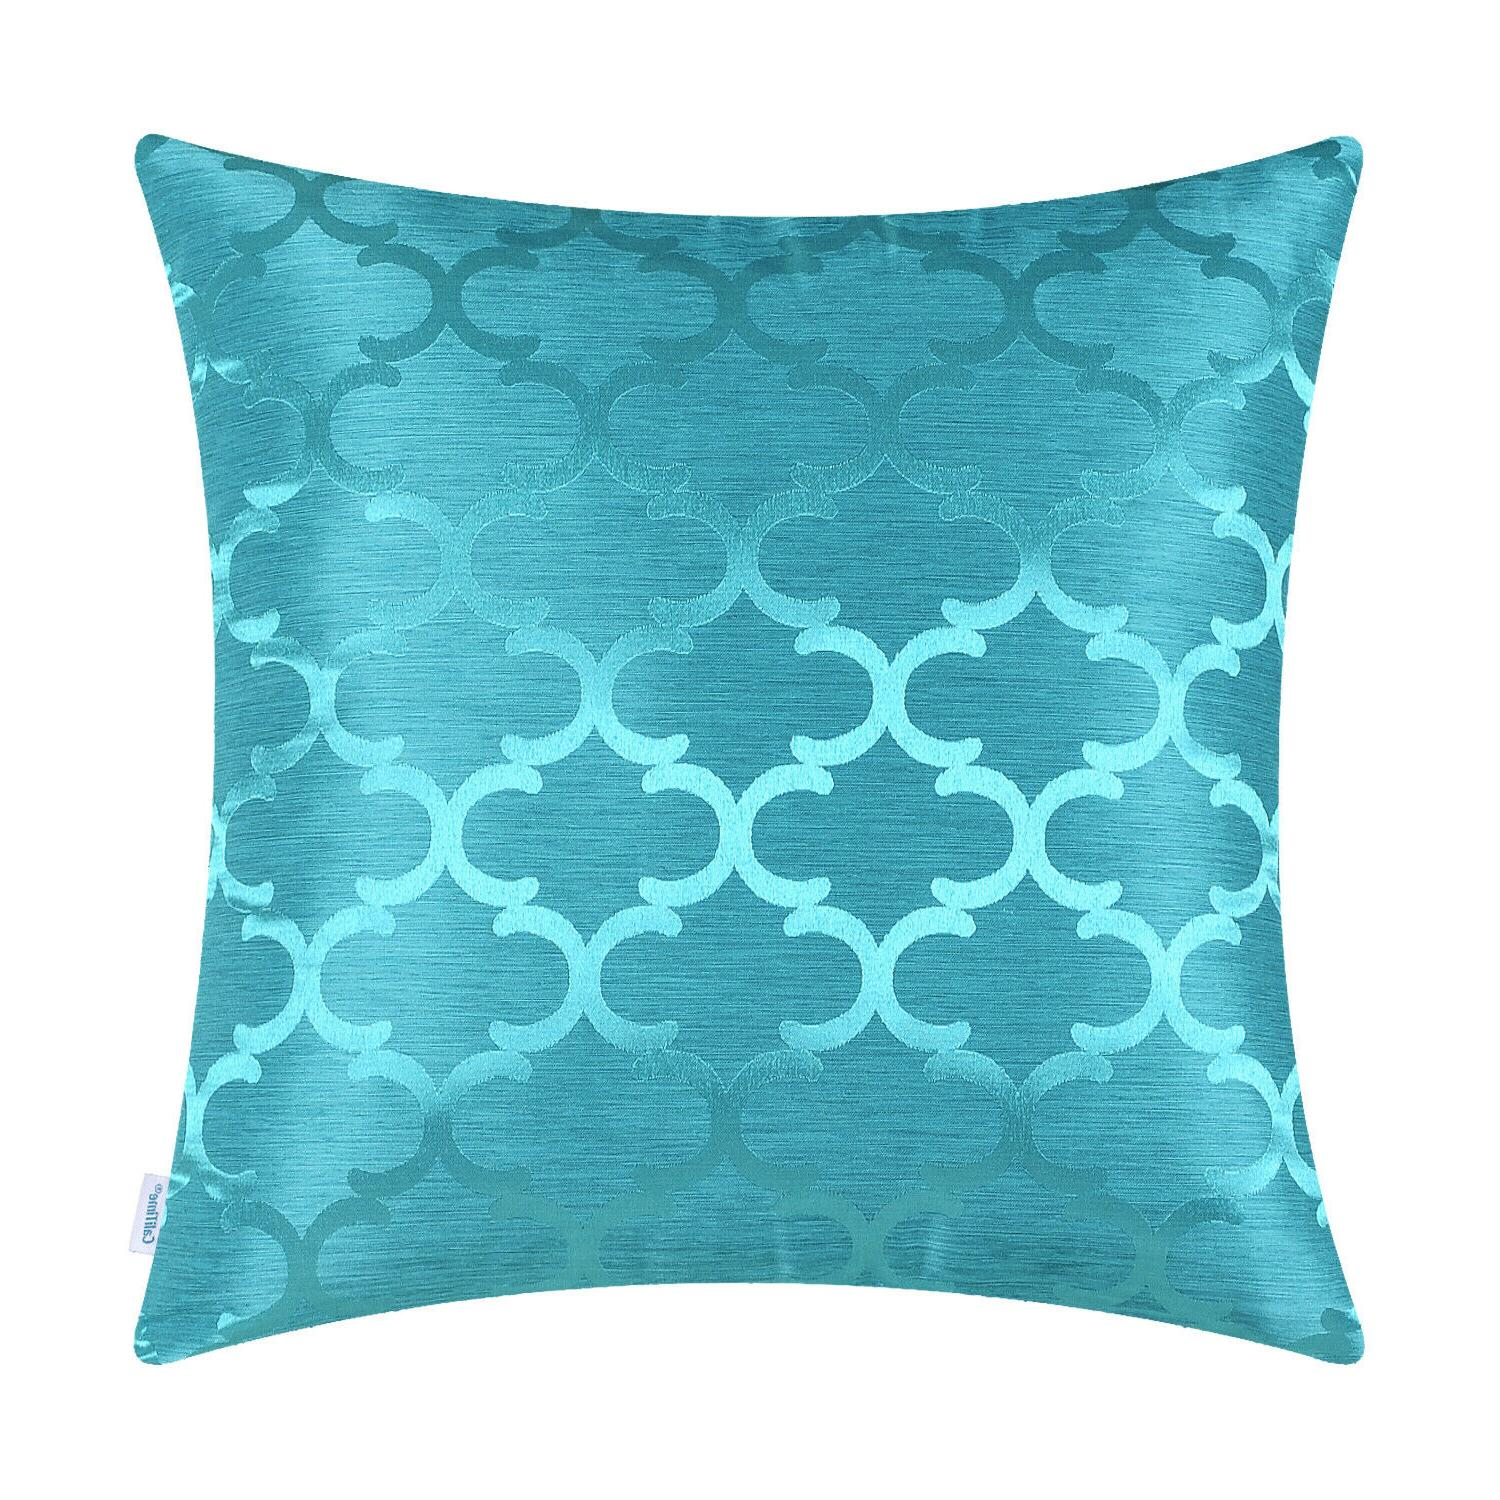 CaliTime Chains Geo Reversible Throw Pillows 16x16""